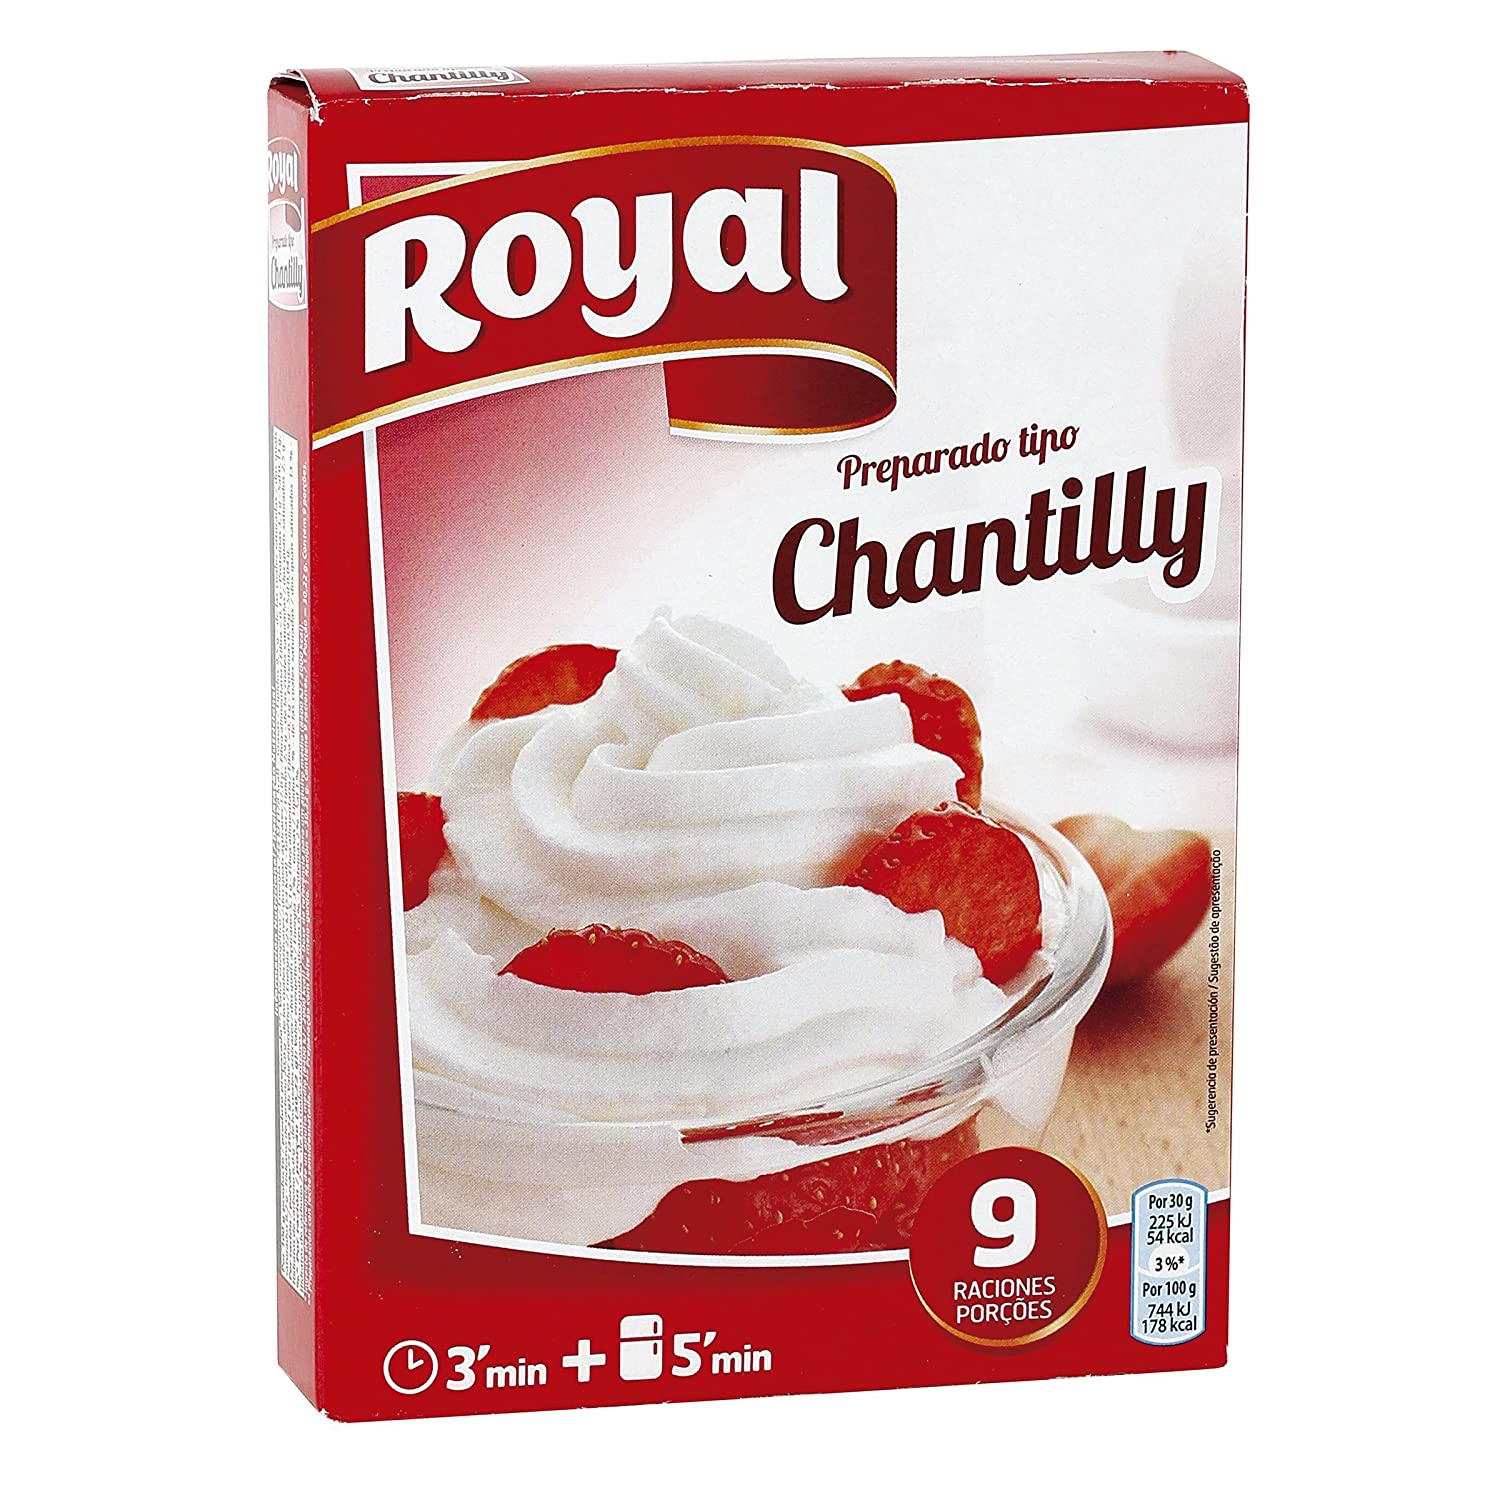 Royal Chantilly - Paquete de 12 x 6 gr - Total: 72 gr: Amazon.es: Alimentación y bebidas